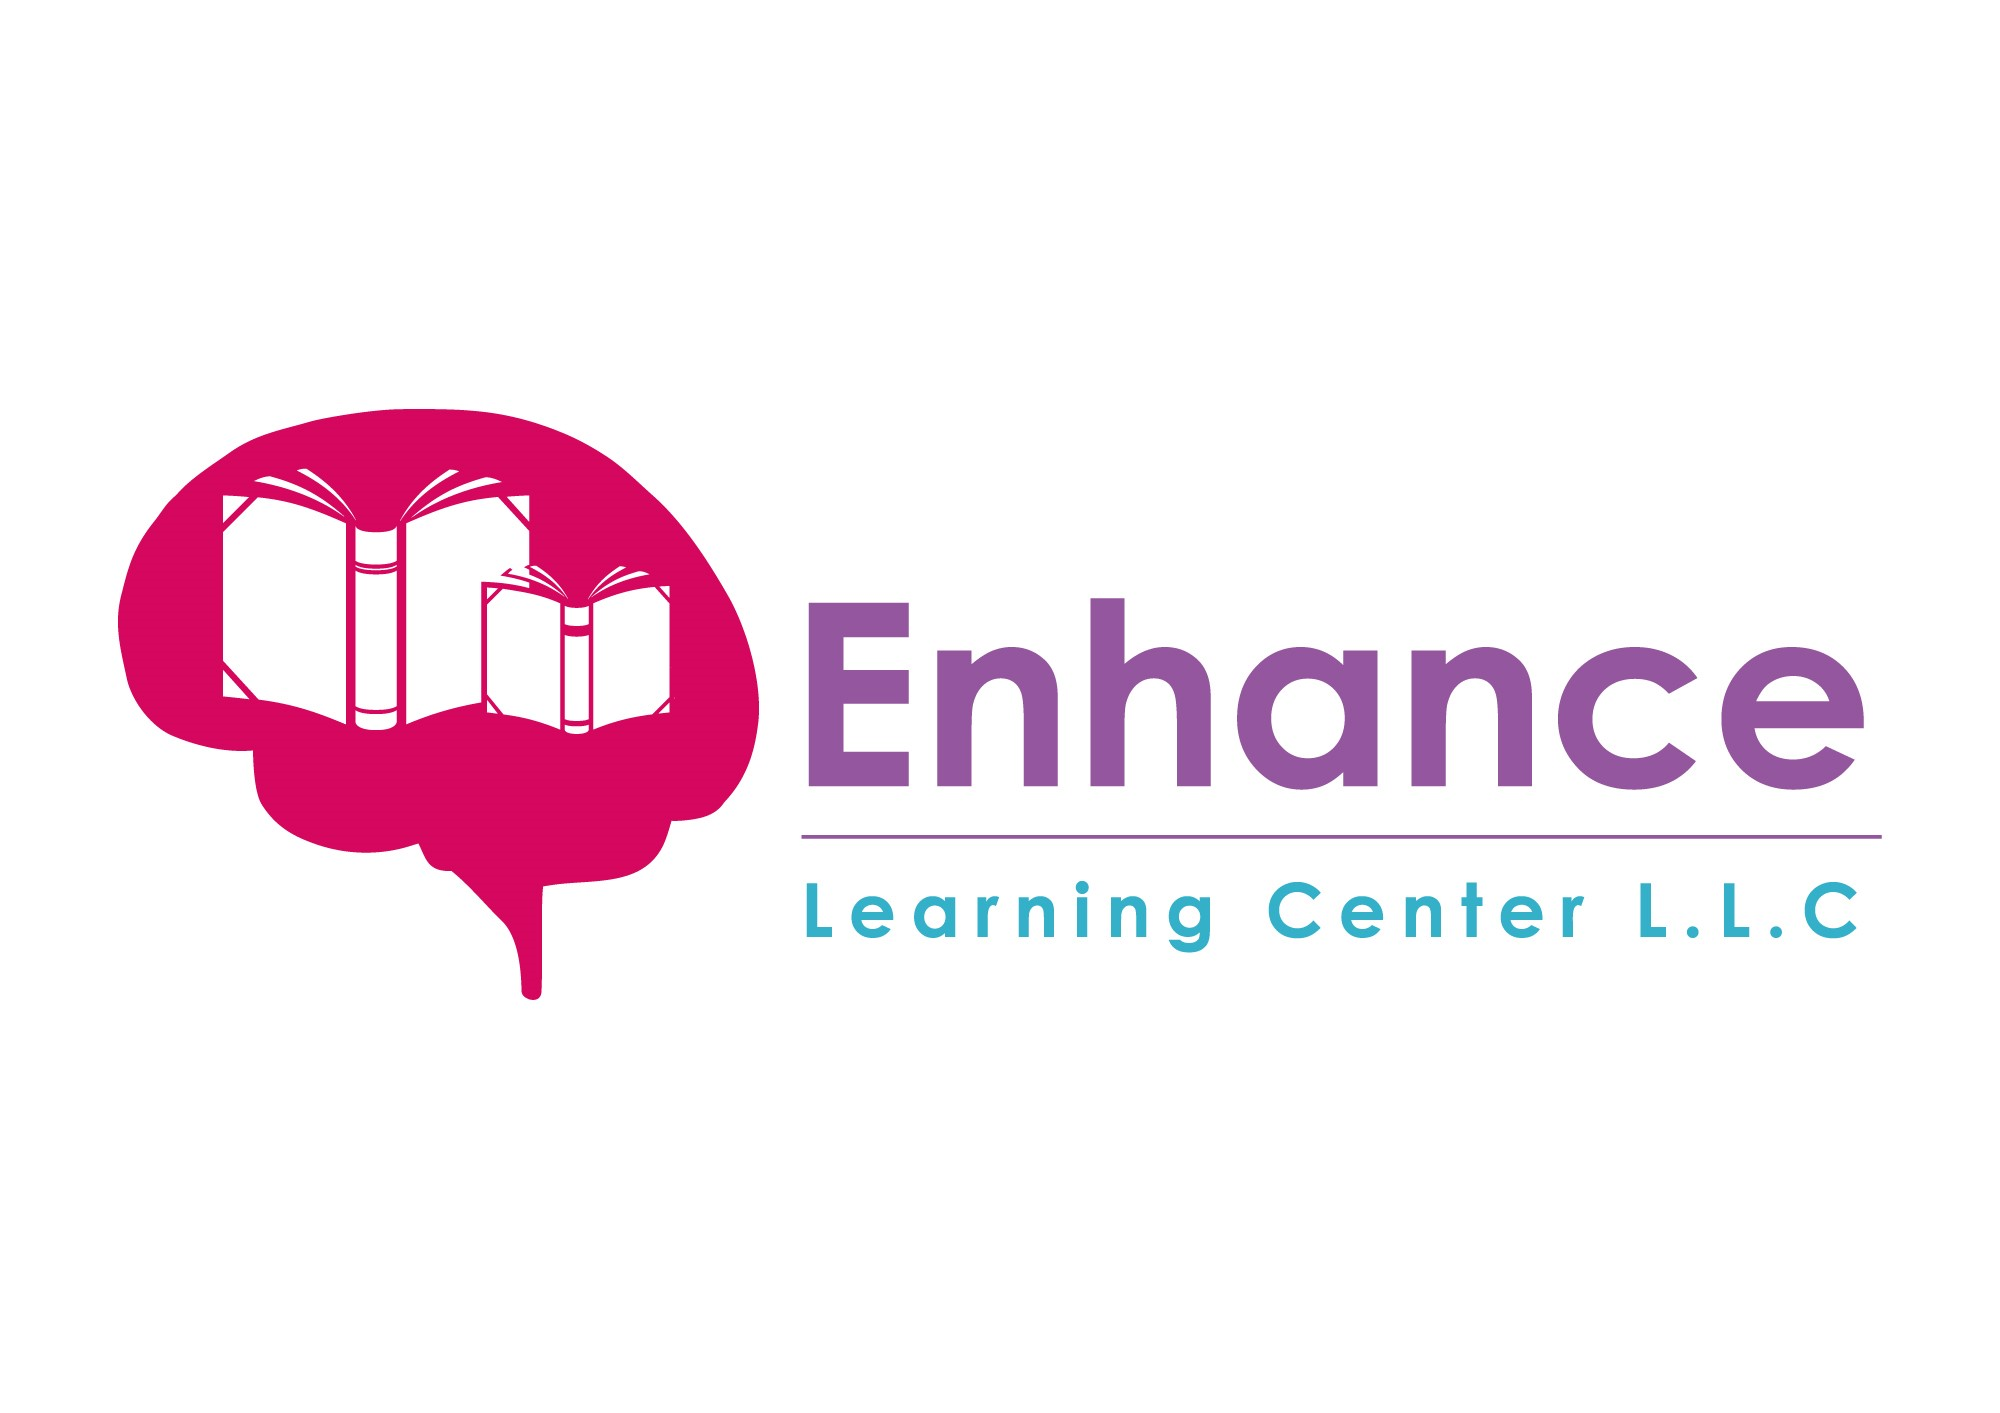 More about Enhance Learning Center